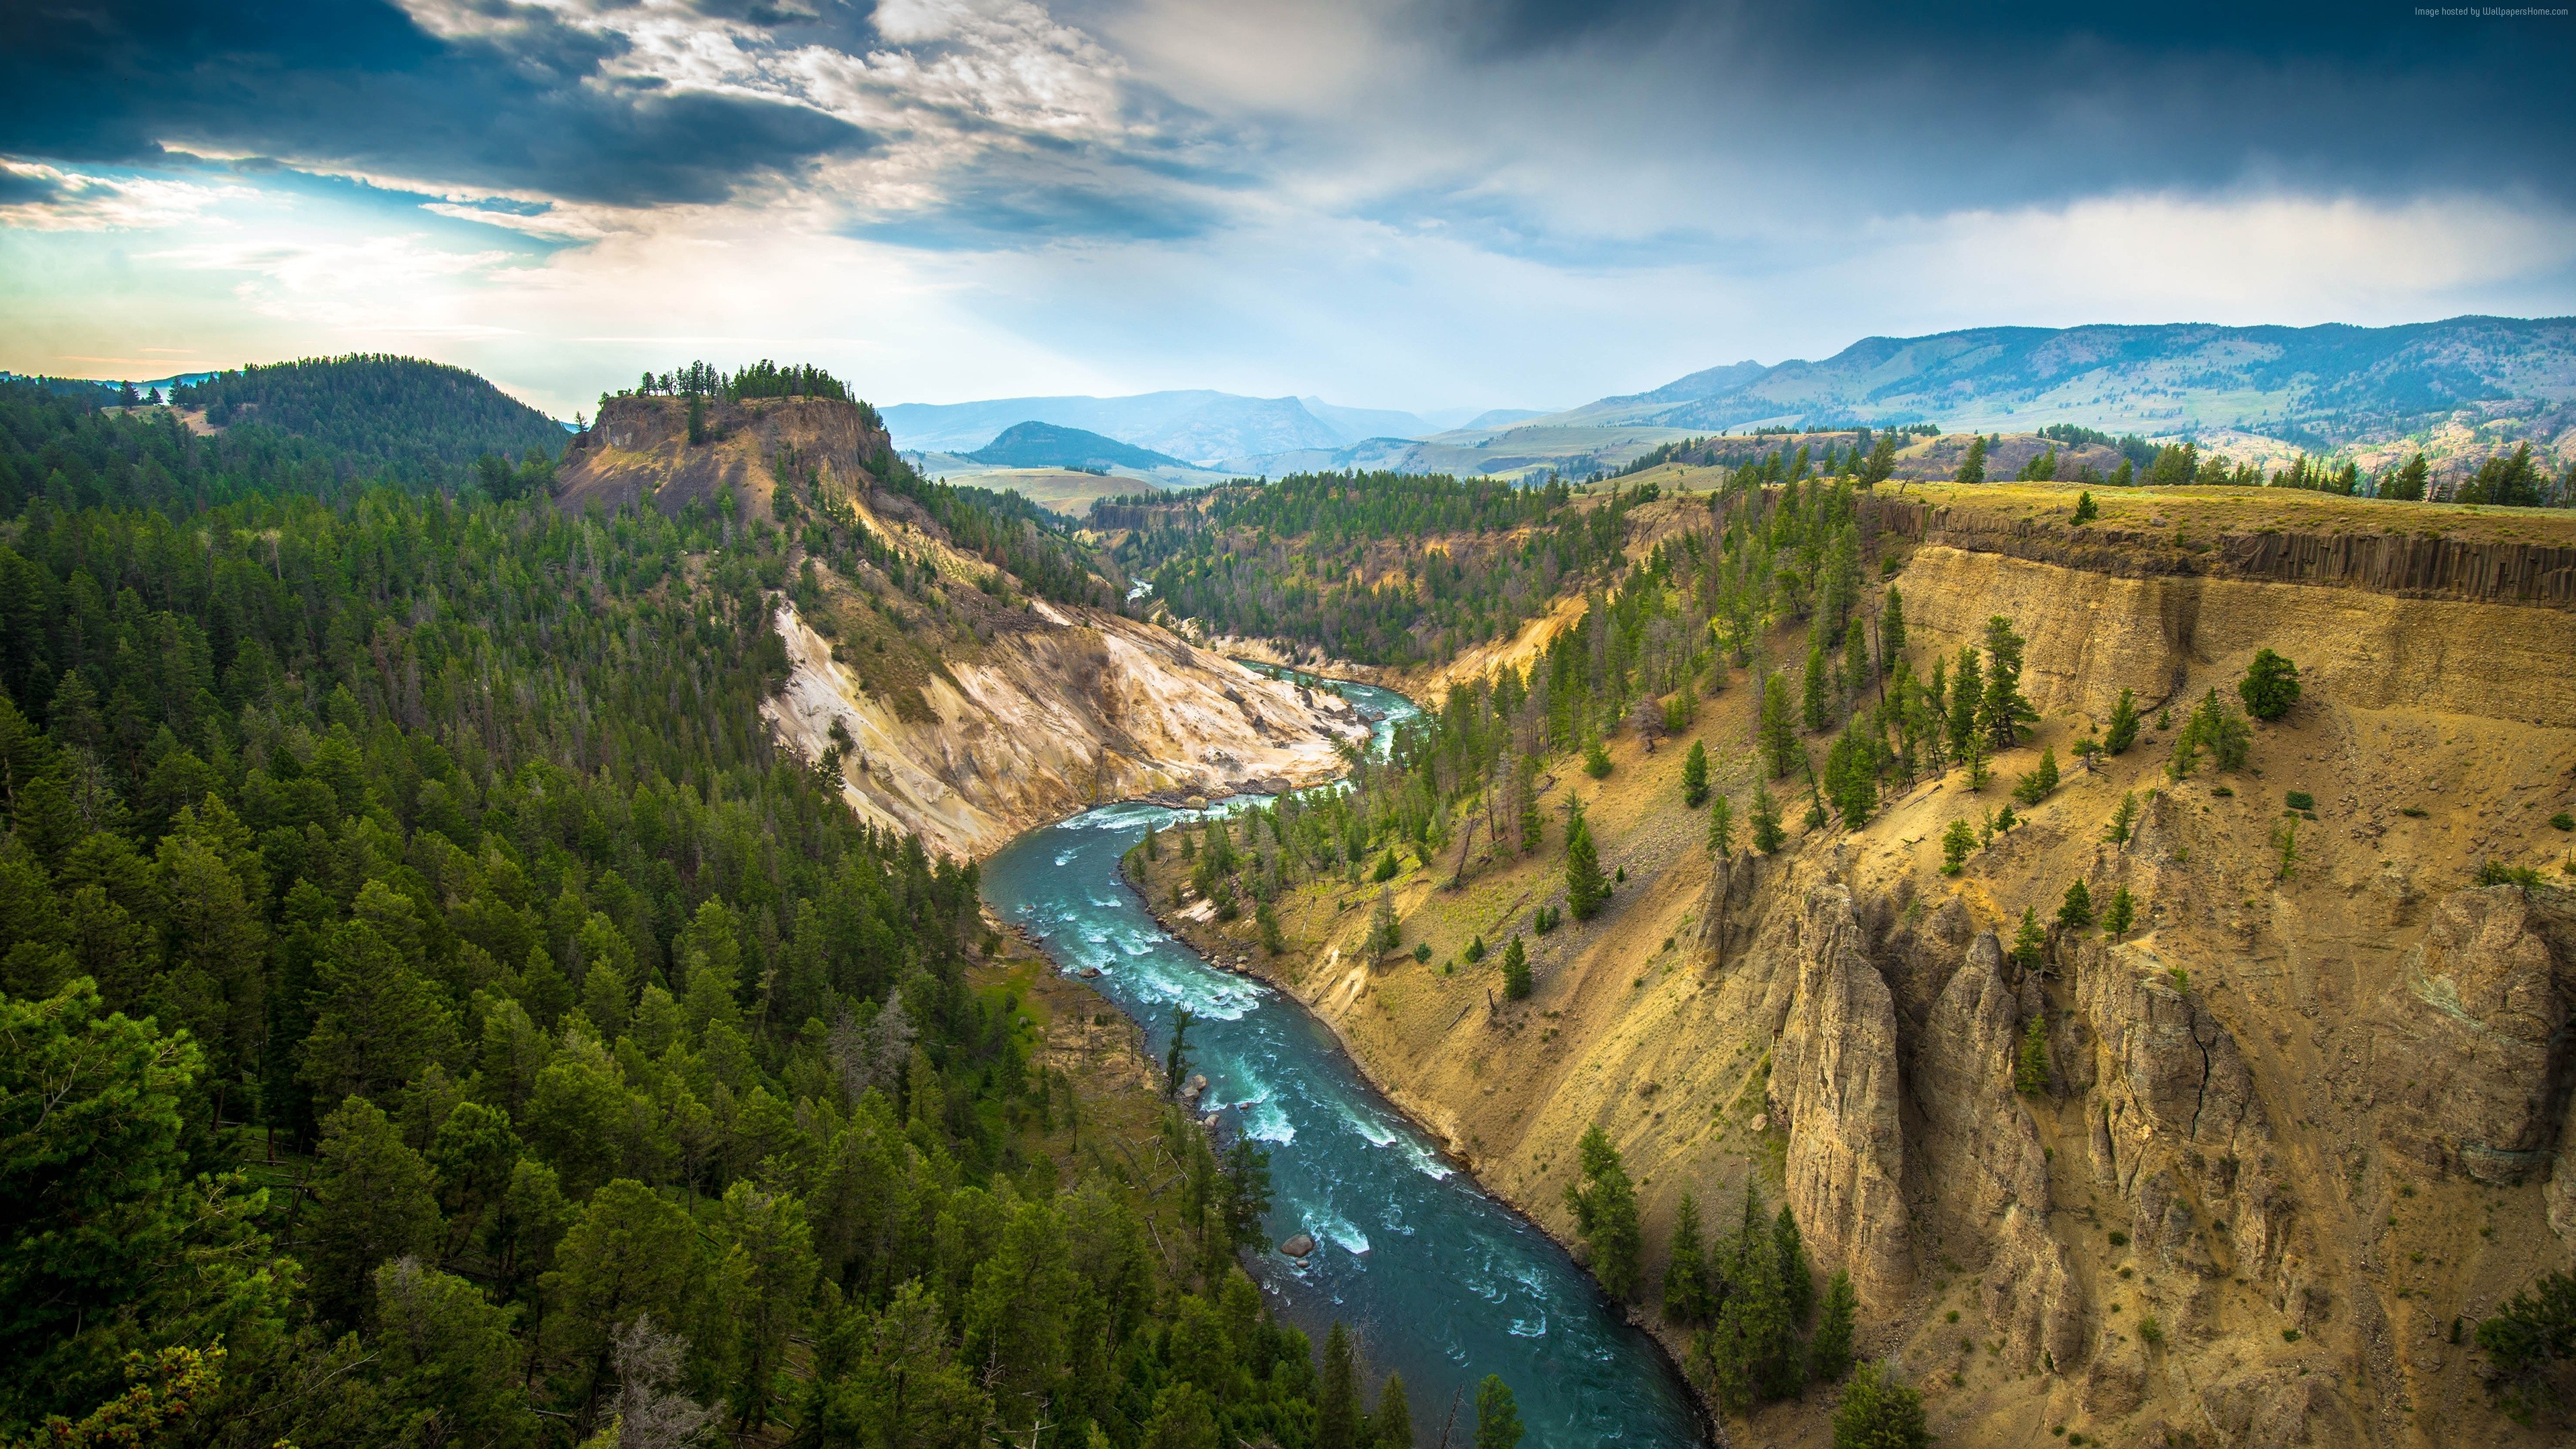 Wallpaper Yellowstone Landscape, 4k, 5k wallpaper, USA, river, travel, tourism, Travel